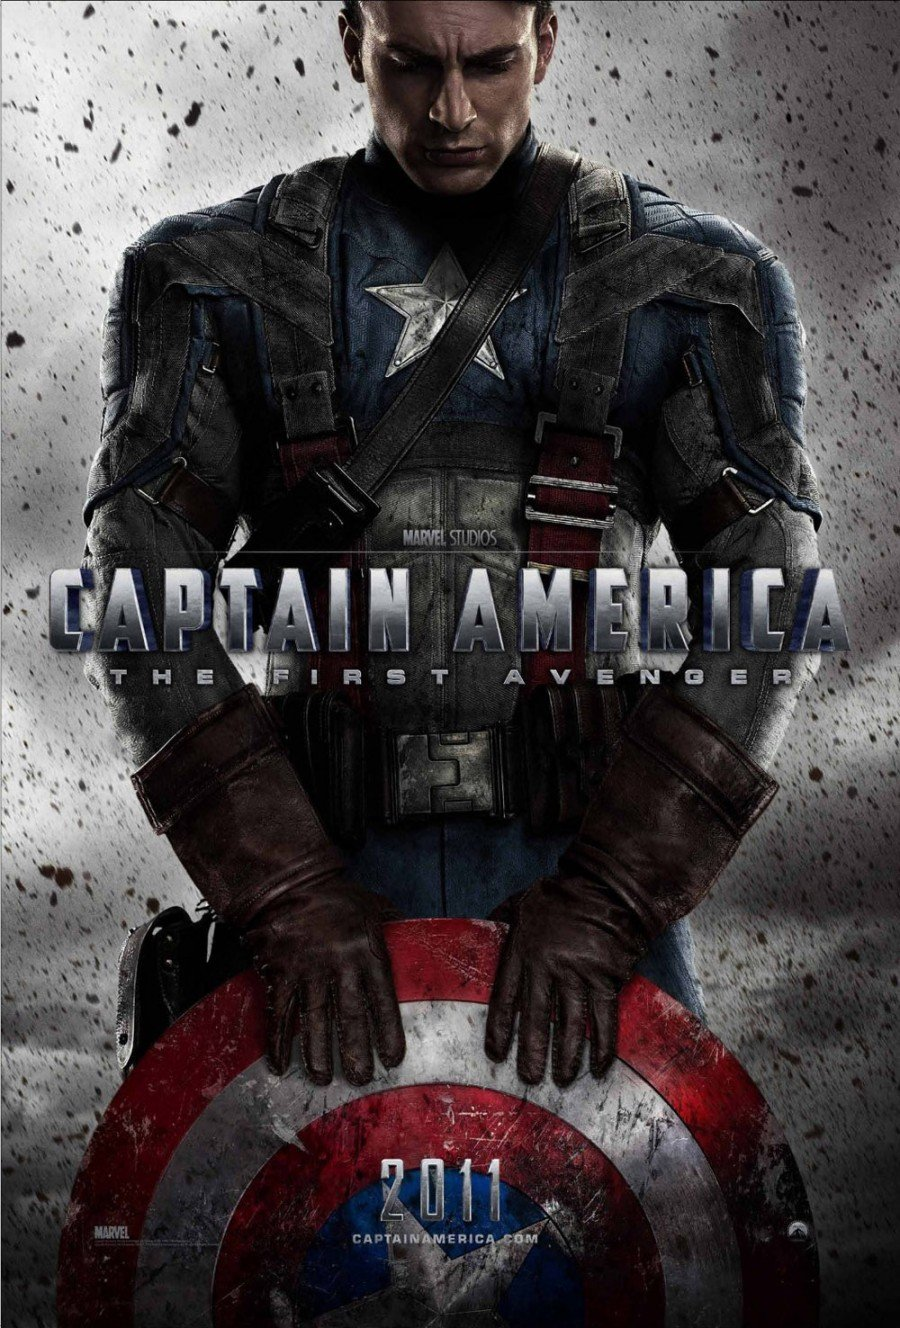 Captain America theatrical trailer